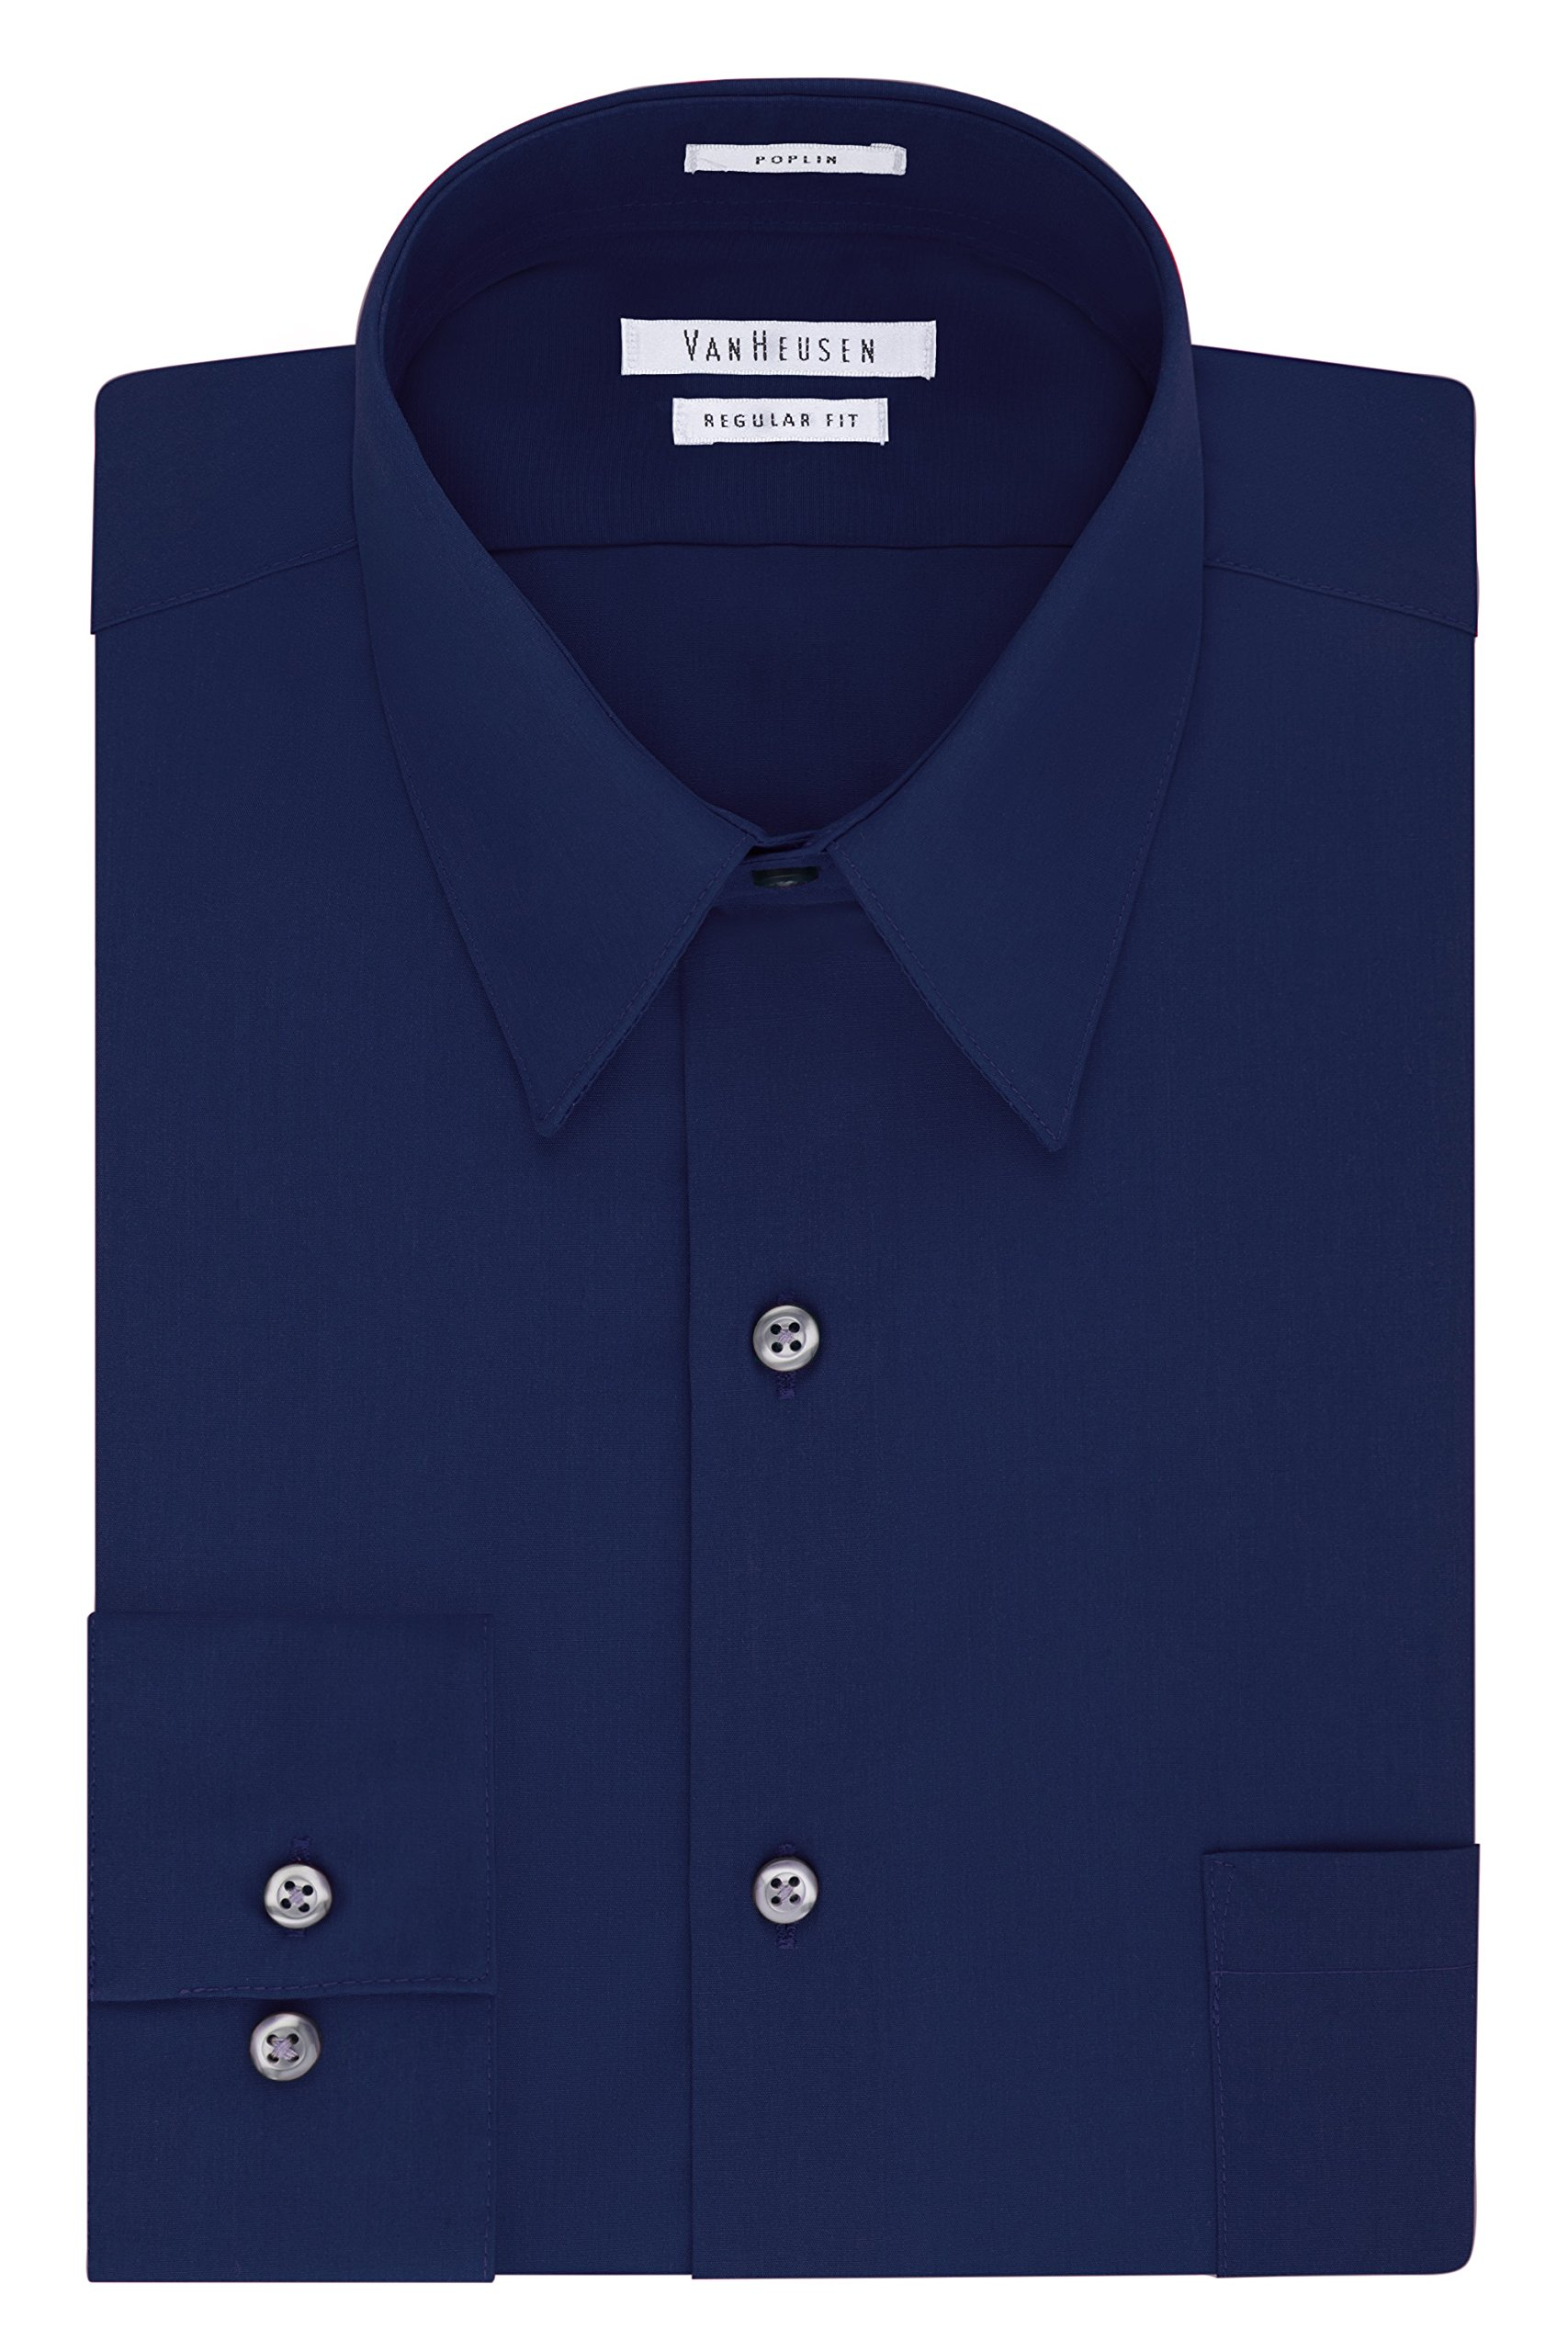 Van Heusen Men's Poplin Regular Fit Solid Point Collar Dress Shirt, Persian Blue, 15'' Neck 32''-33'' Sleeve